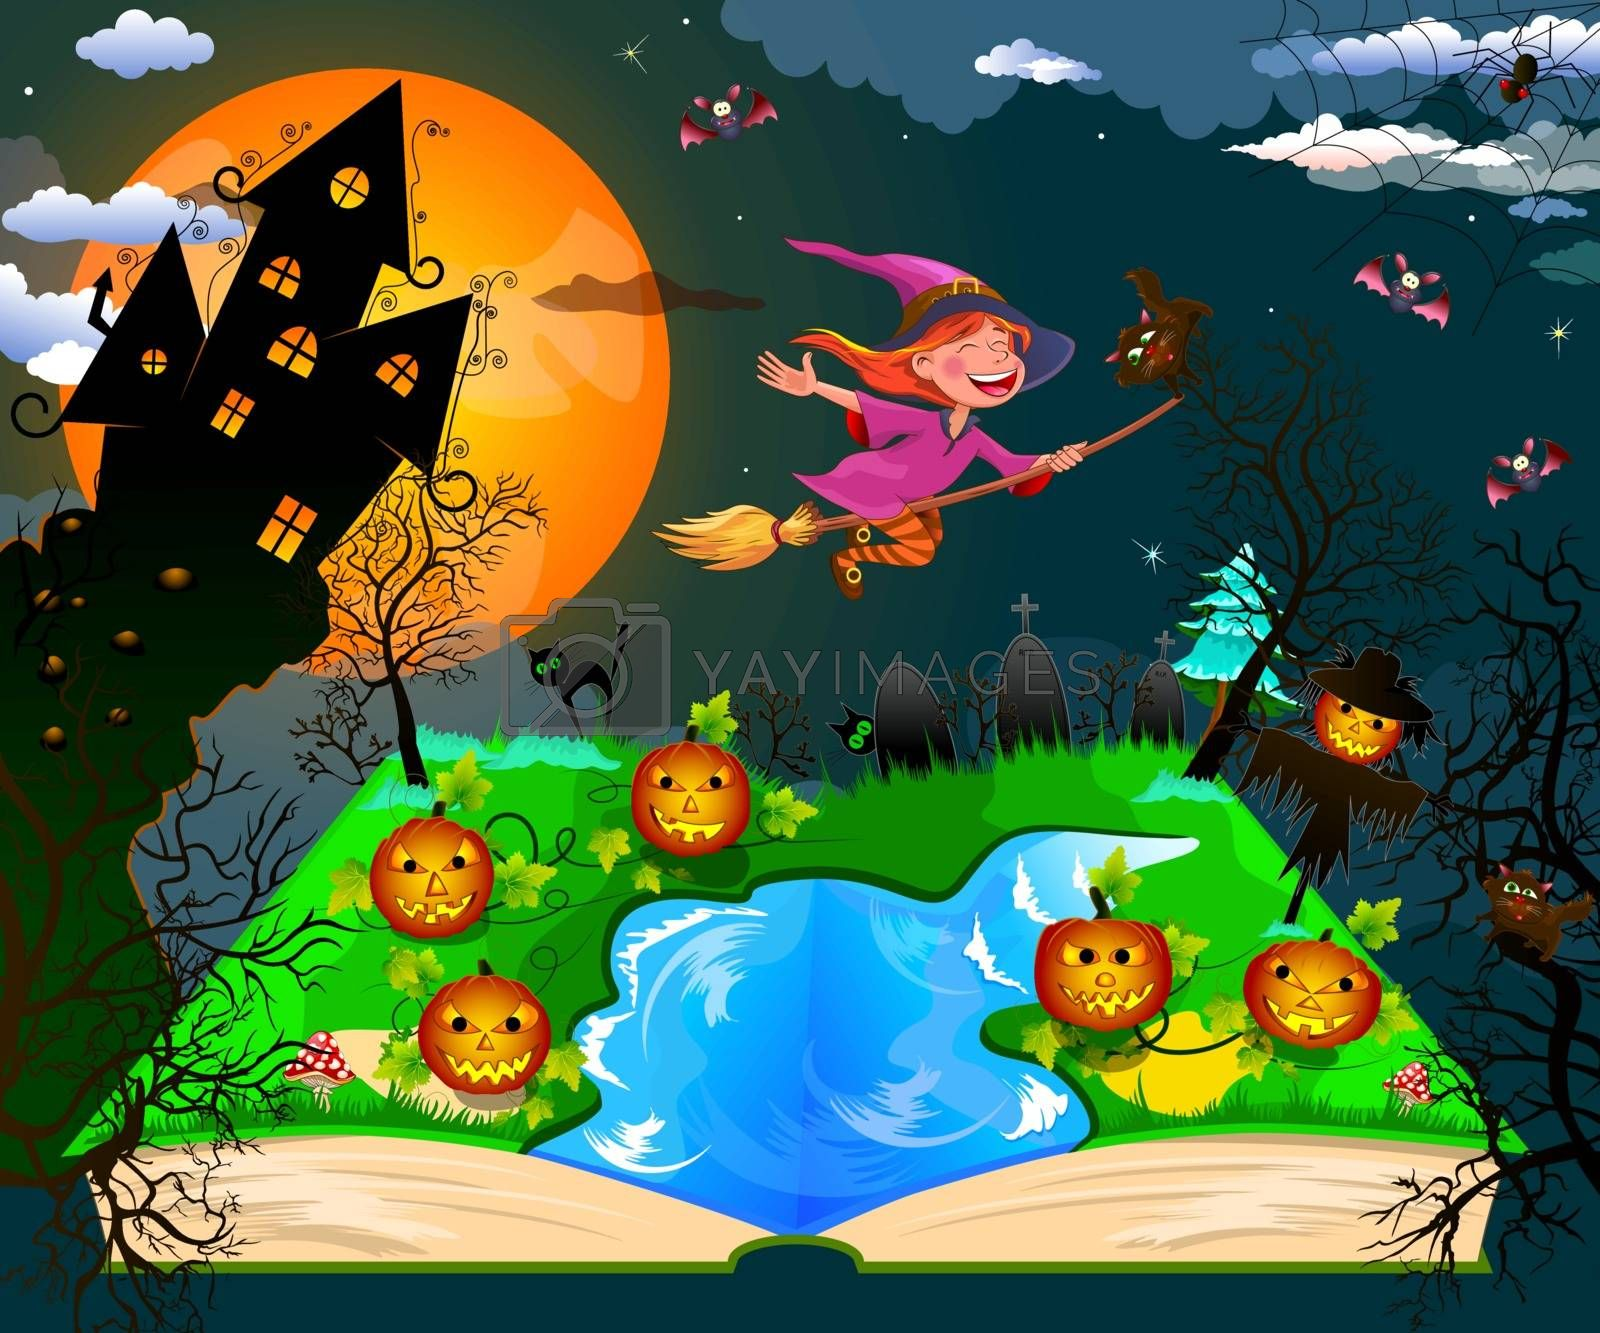 Night on Halloween. Joyful little witch flying on a broomstick in the night sky, against the backdrop of a castle, a pumpkin and trees, surrounded by bats. Witch and cat flying on a broom.